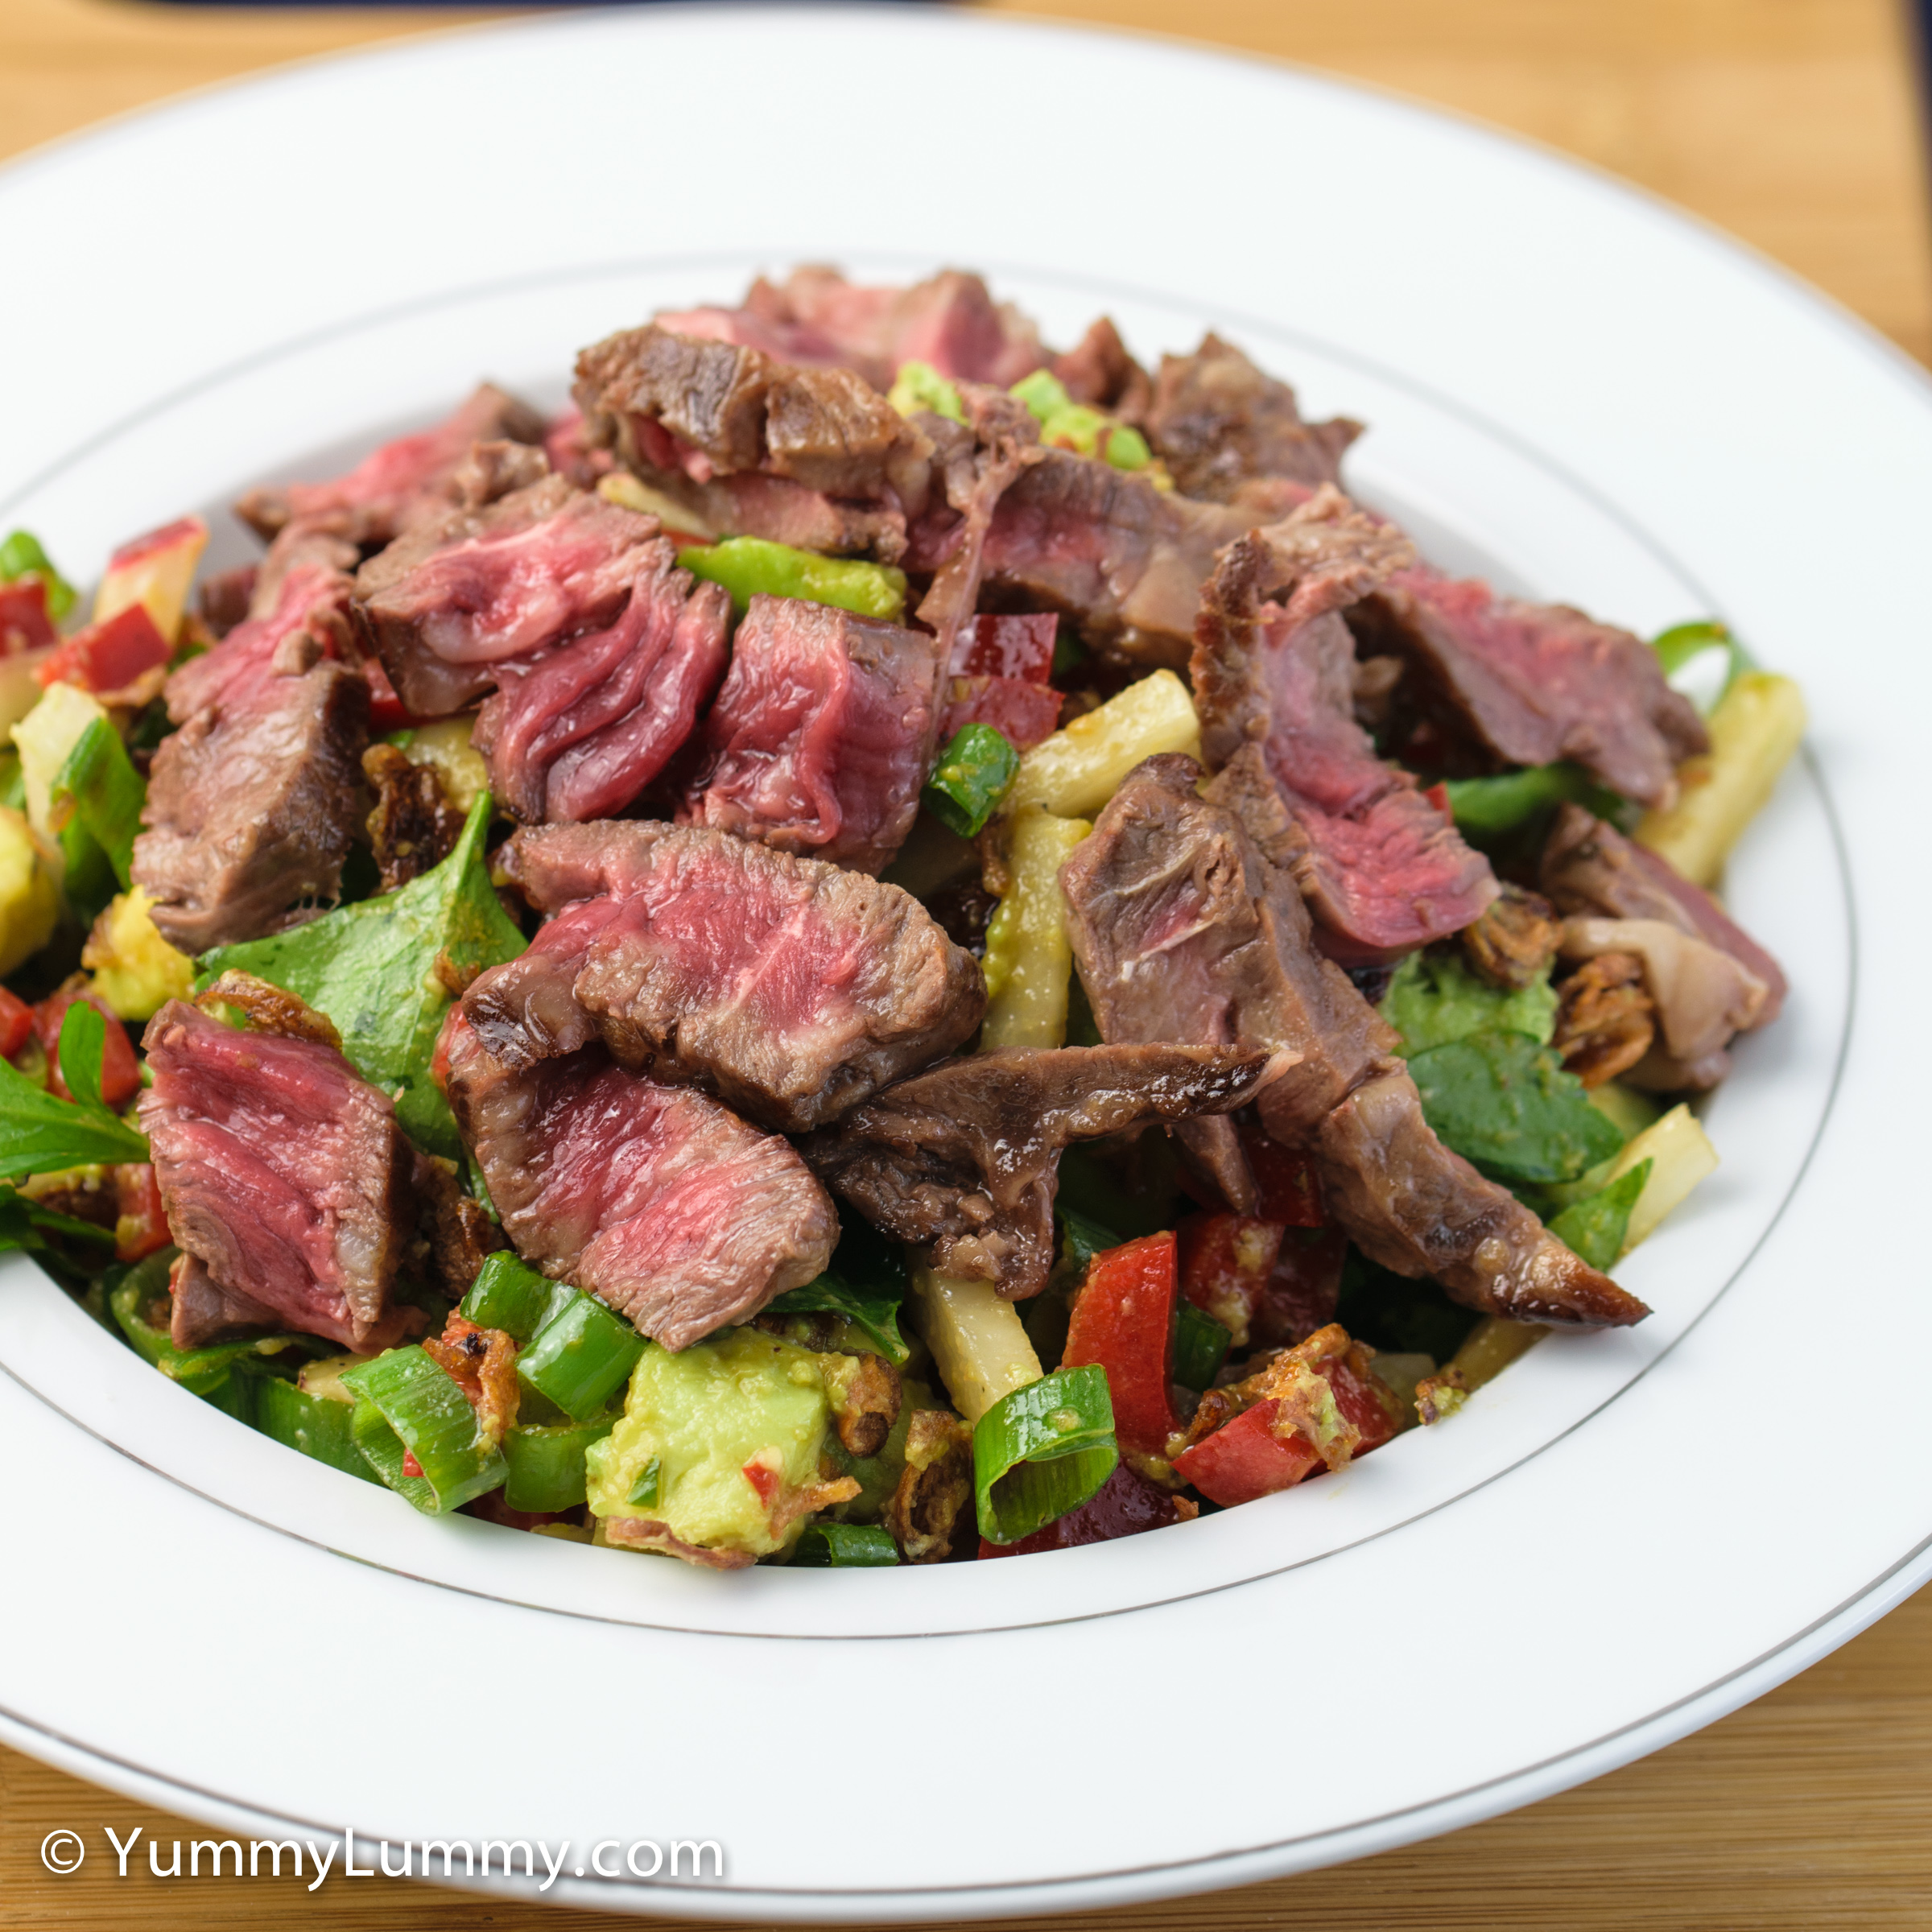 A photograph of my rare steak salad for dinner